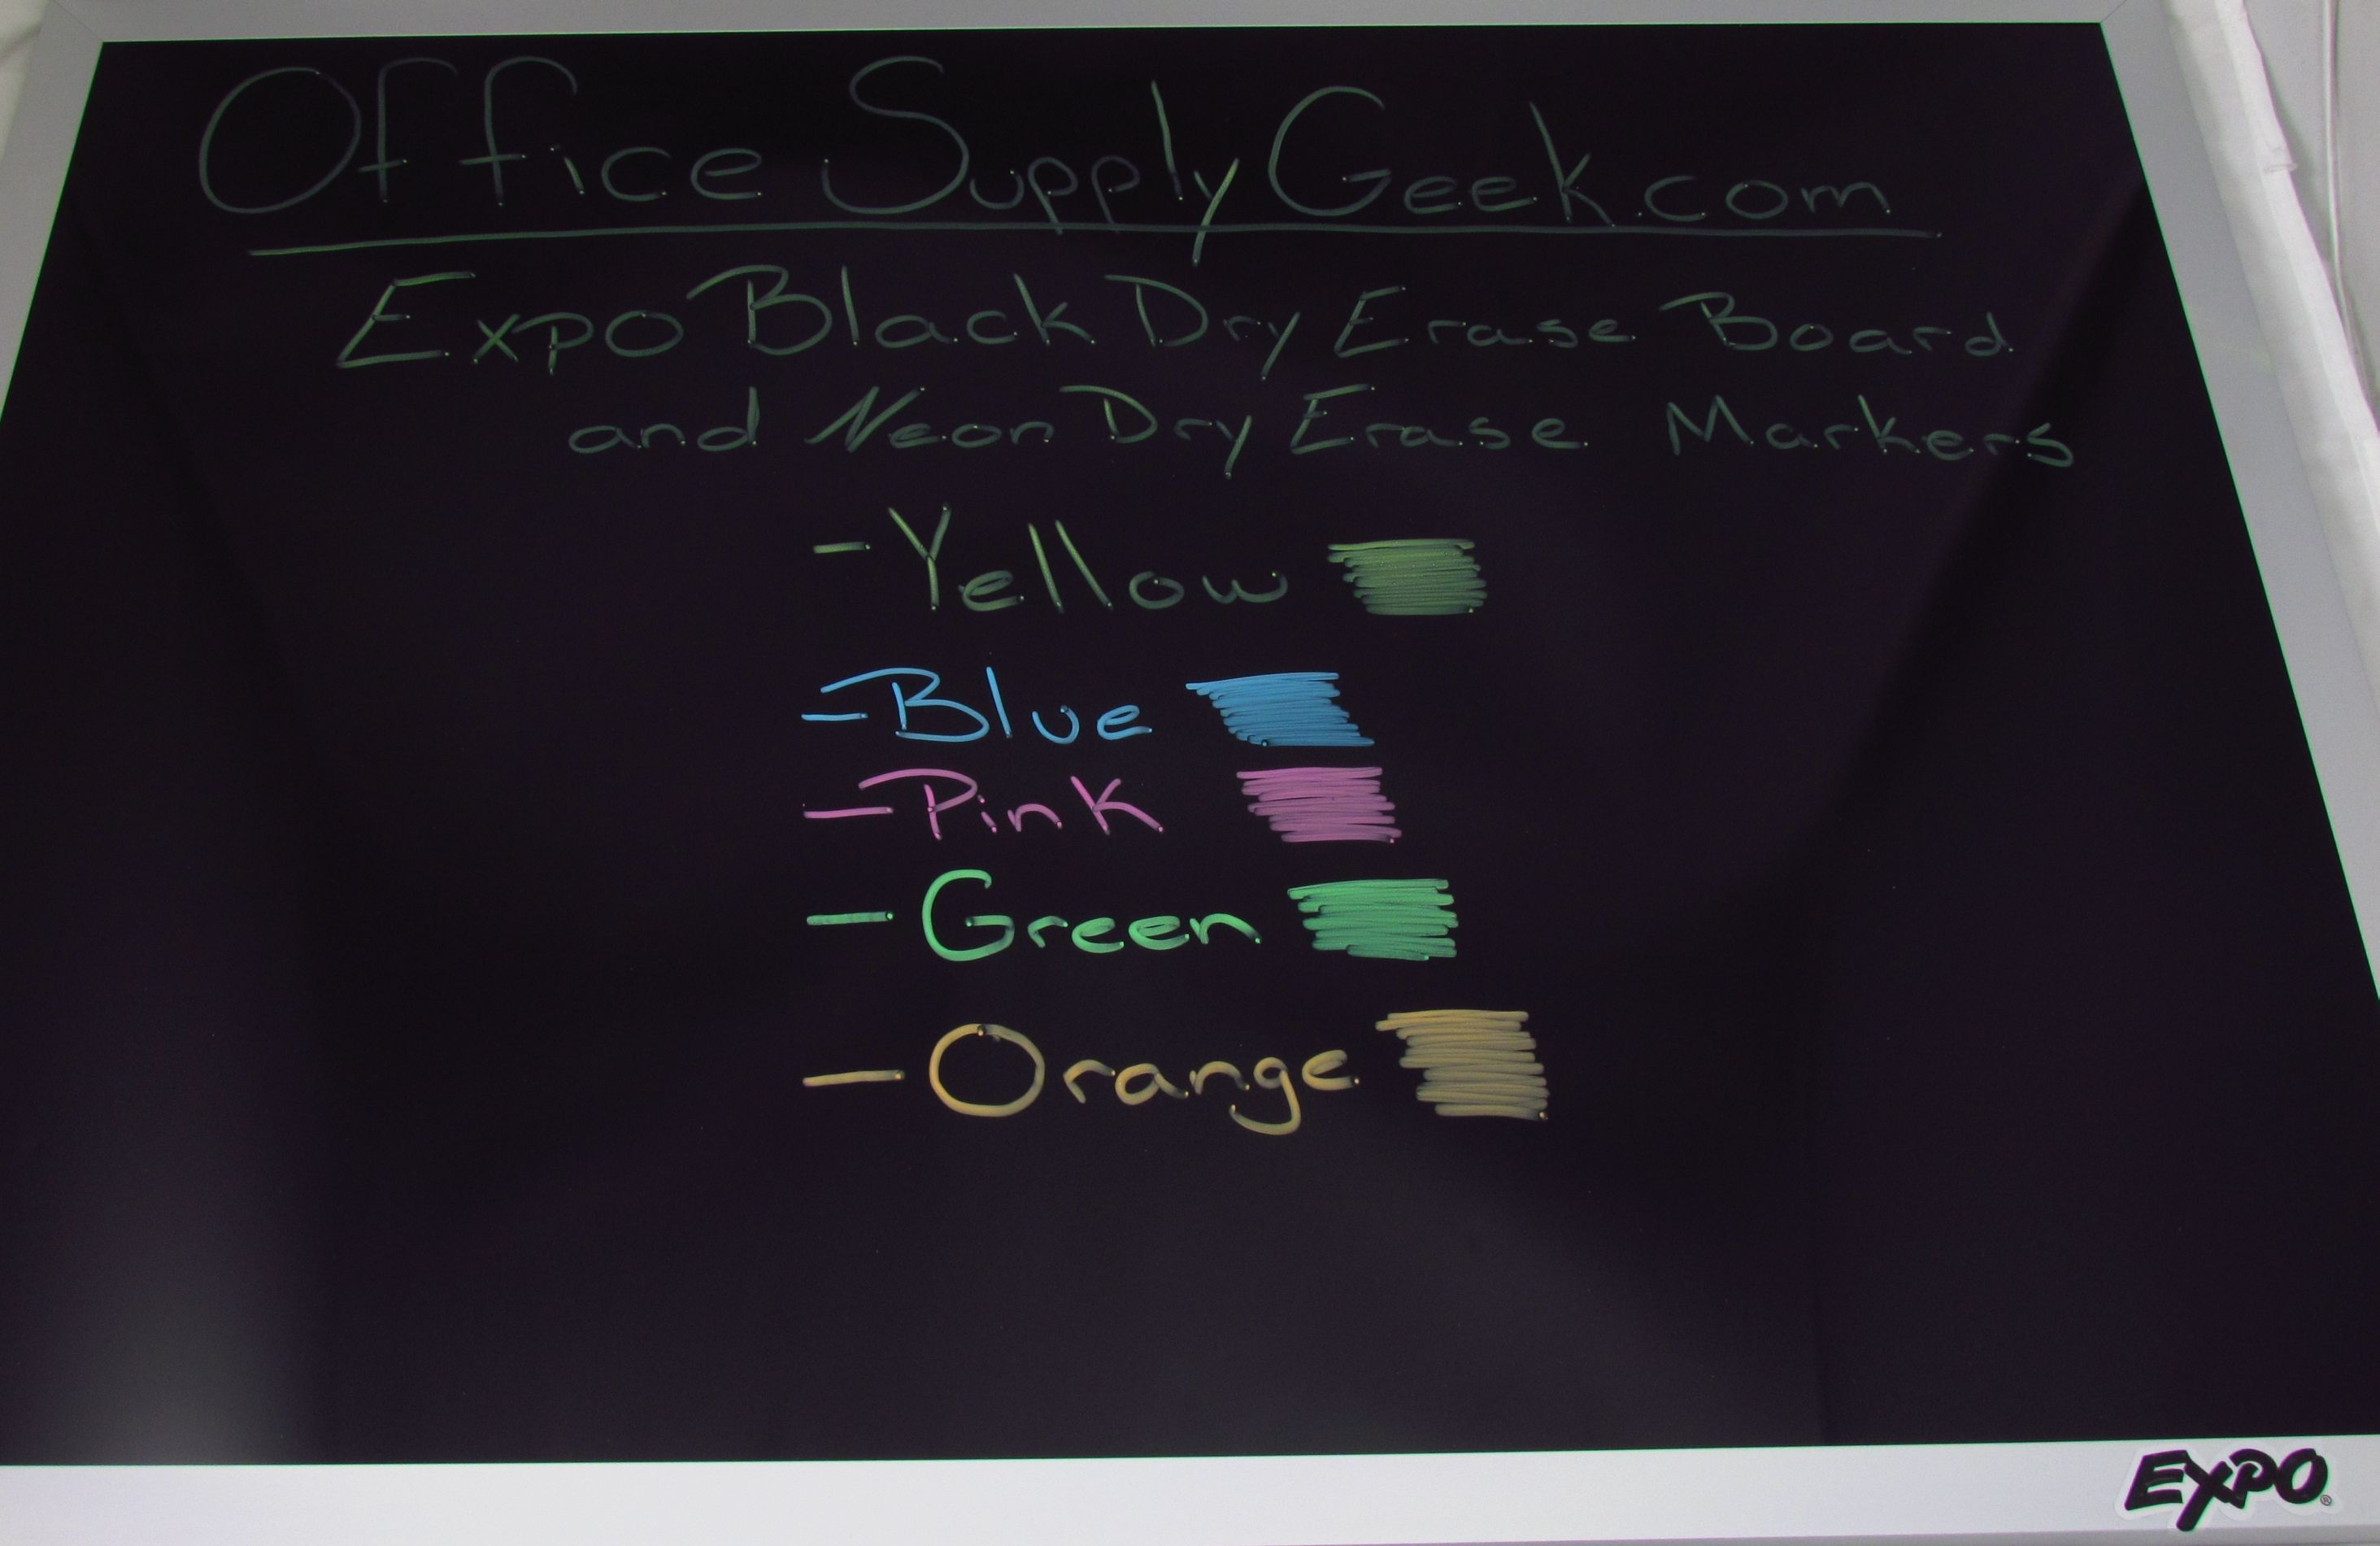 Expo Black Dry Erase Board And Neon Markers